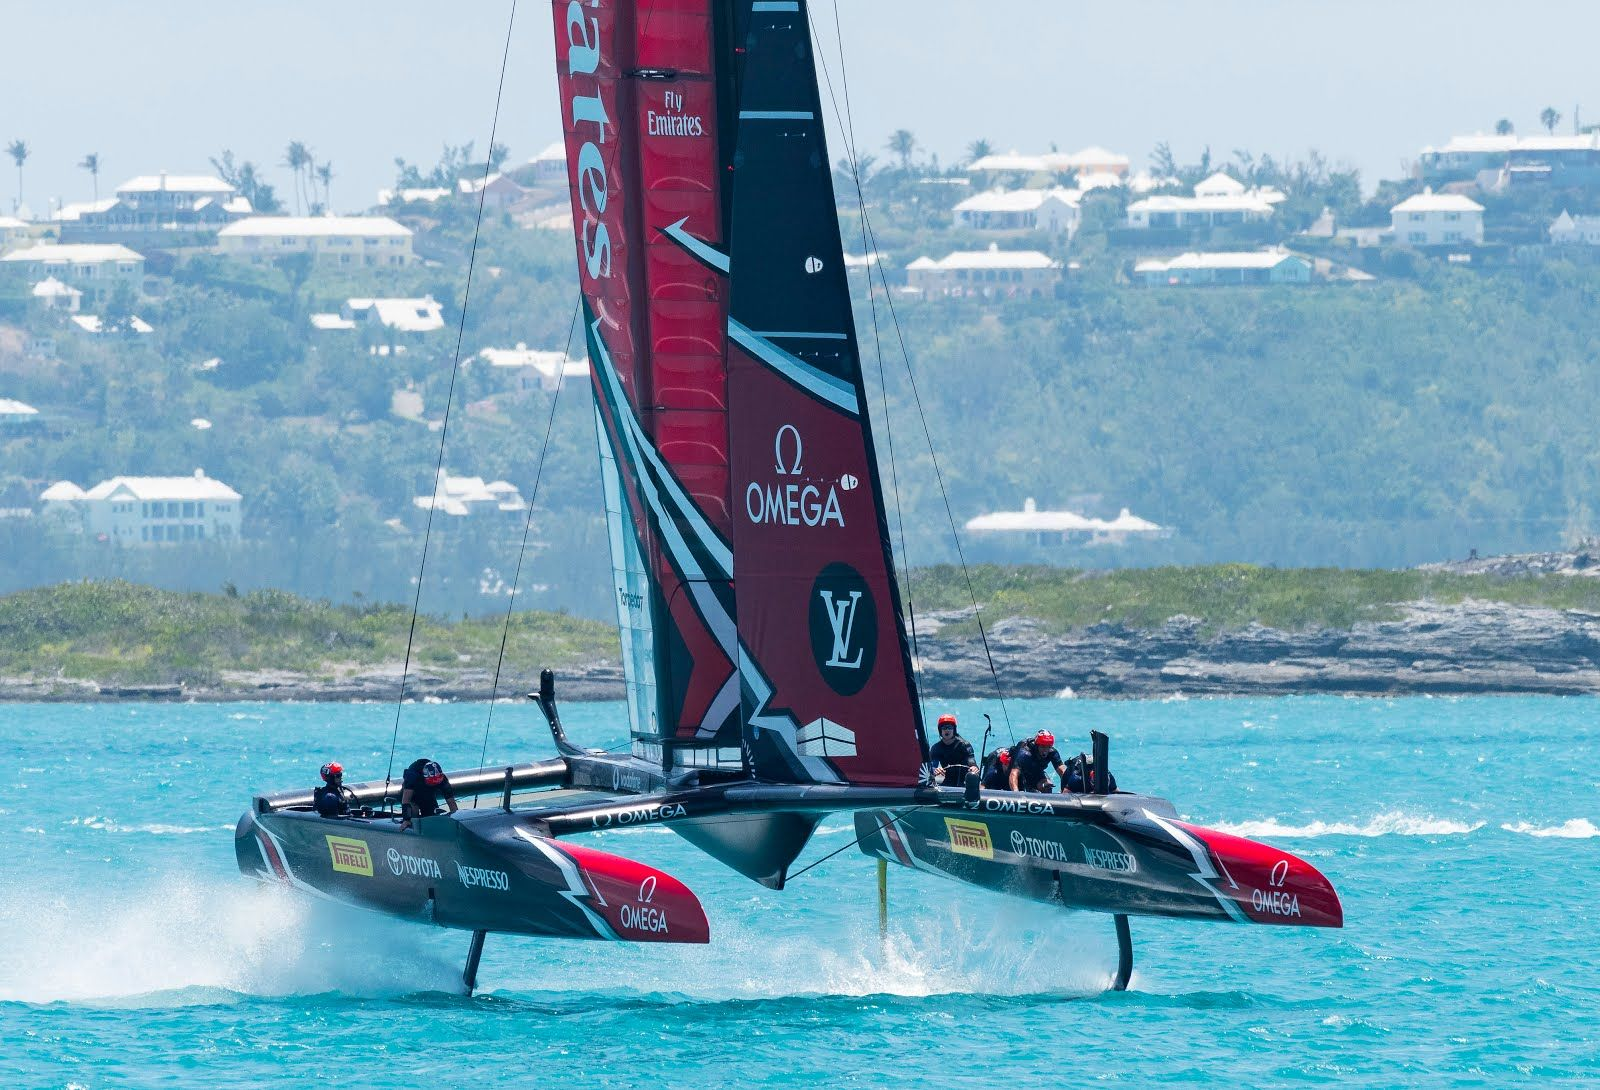 Colaboración de Omega con el Emirates Team New Zealand de vela